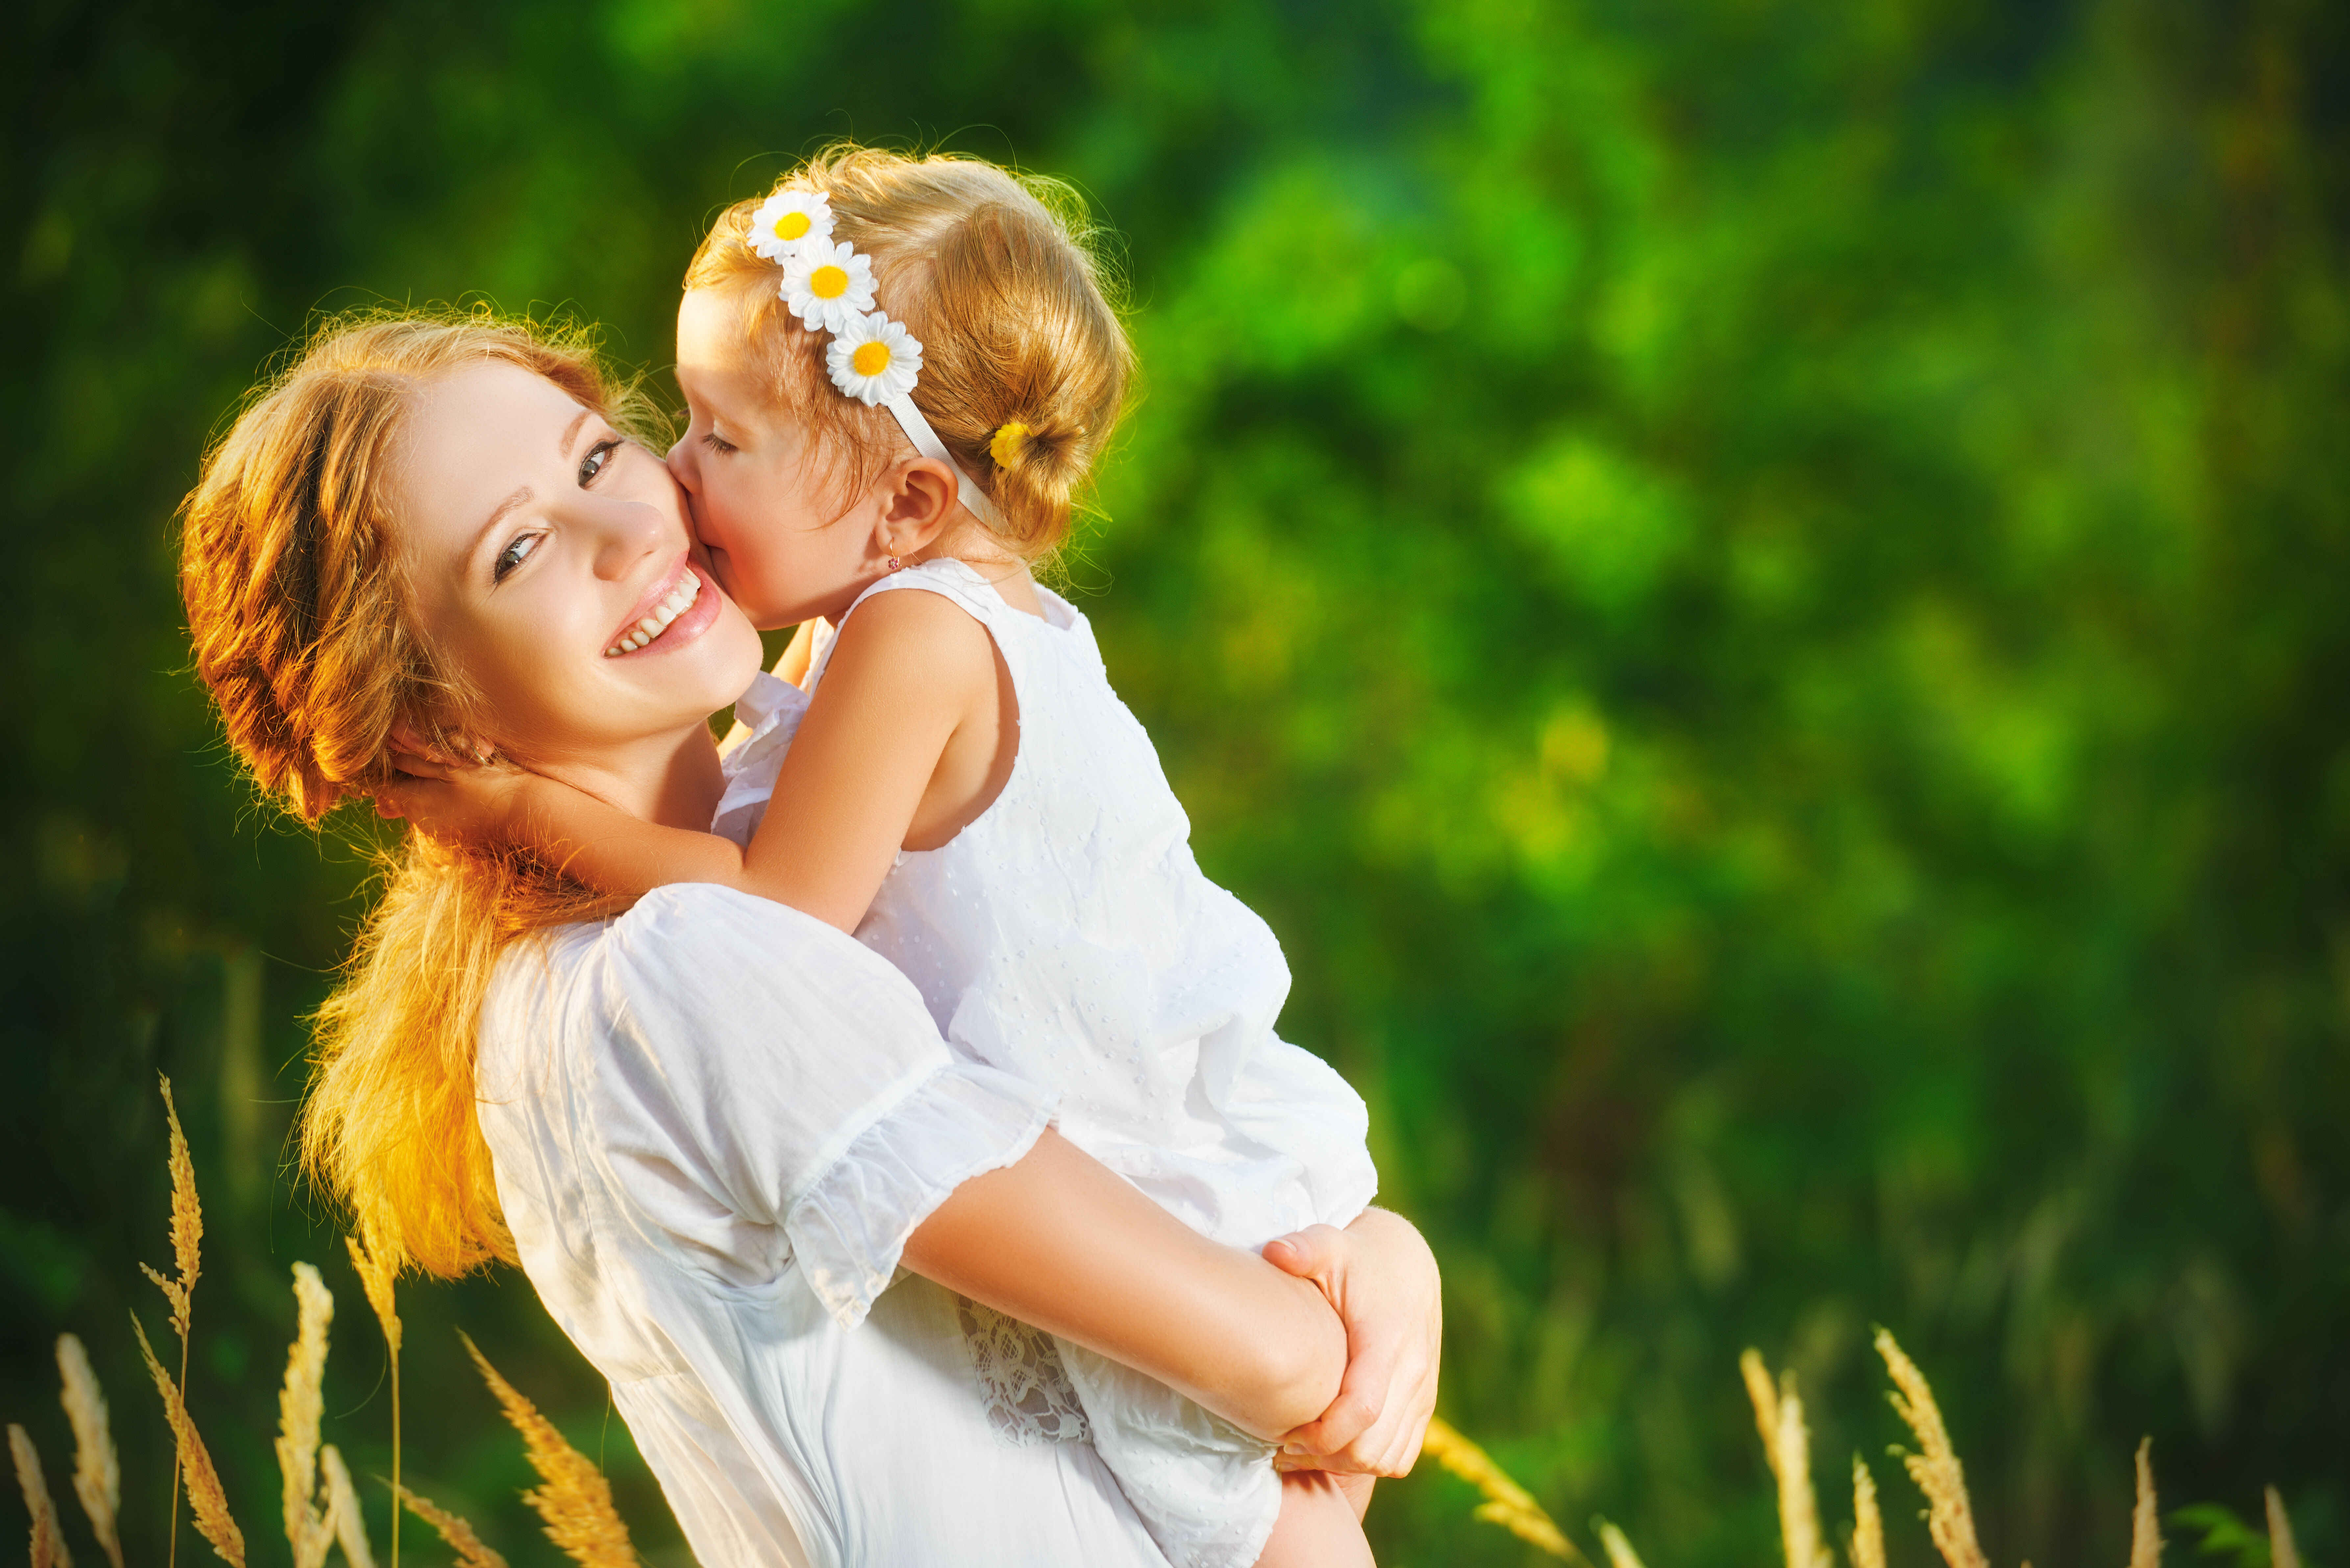 biological treatment for environmental allergies